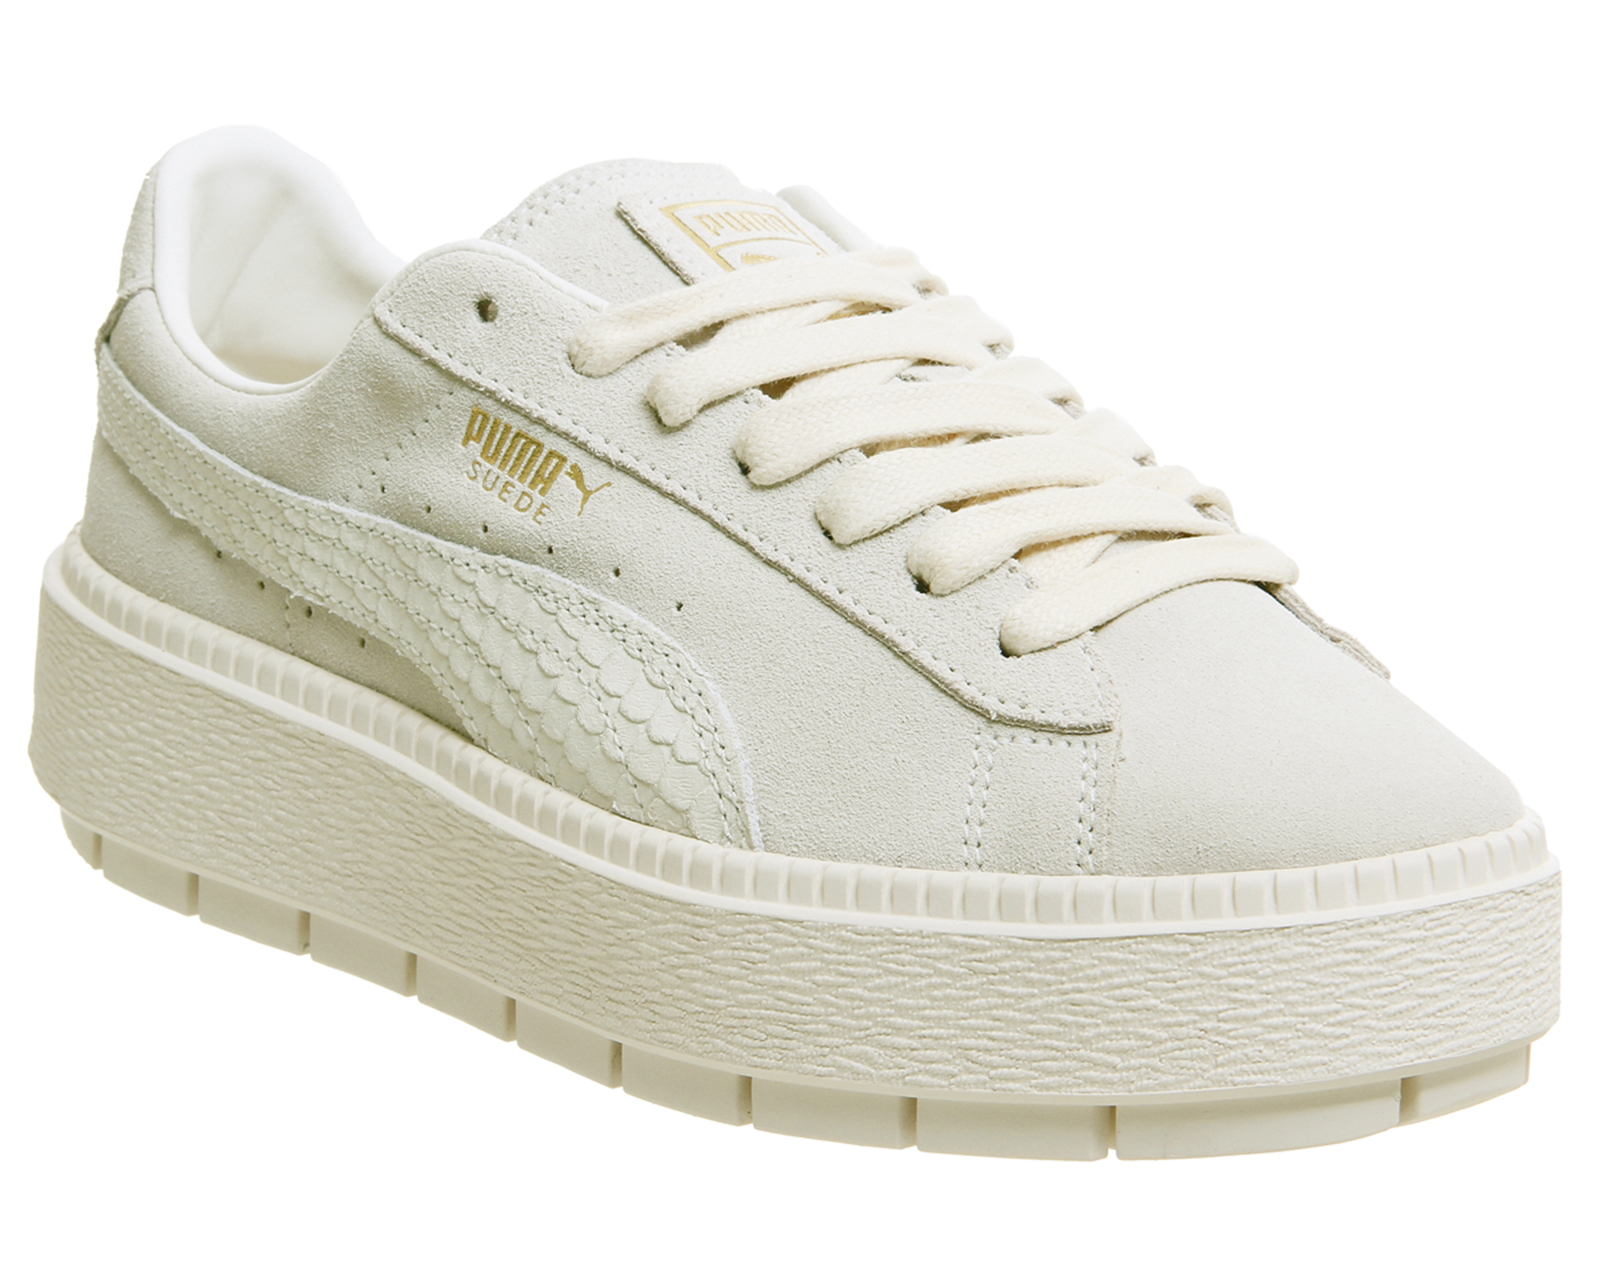 ef9a4169dfe Sentinel Womens Puma Suede Platform Trace Trainers Whisper White Gold  Animal Trainers Sho